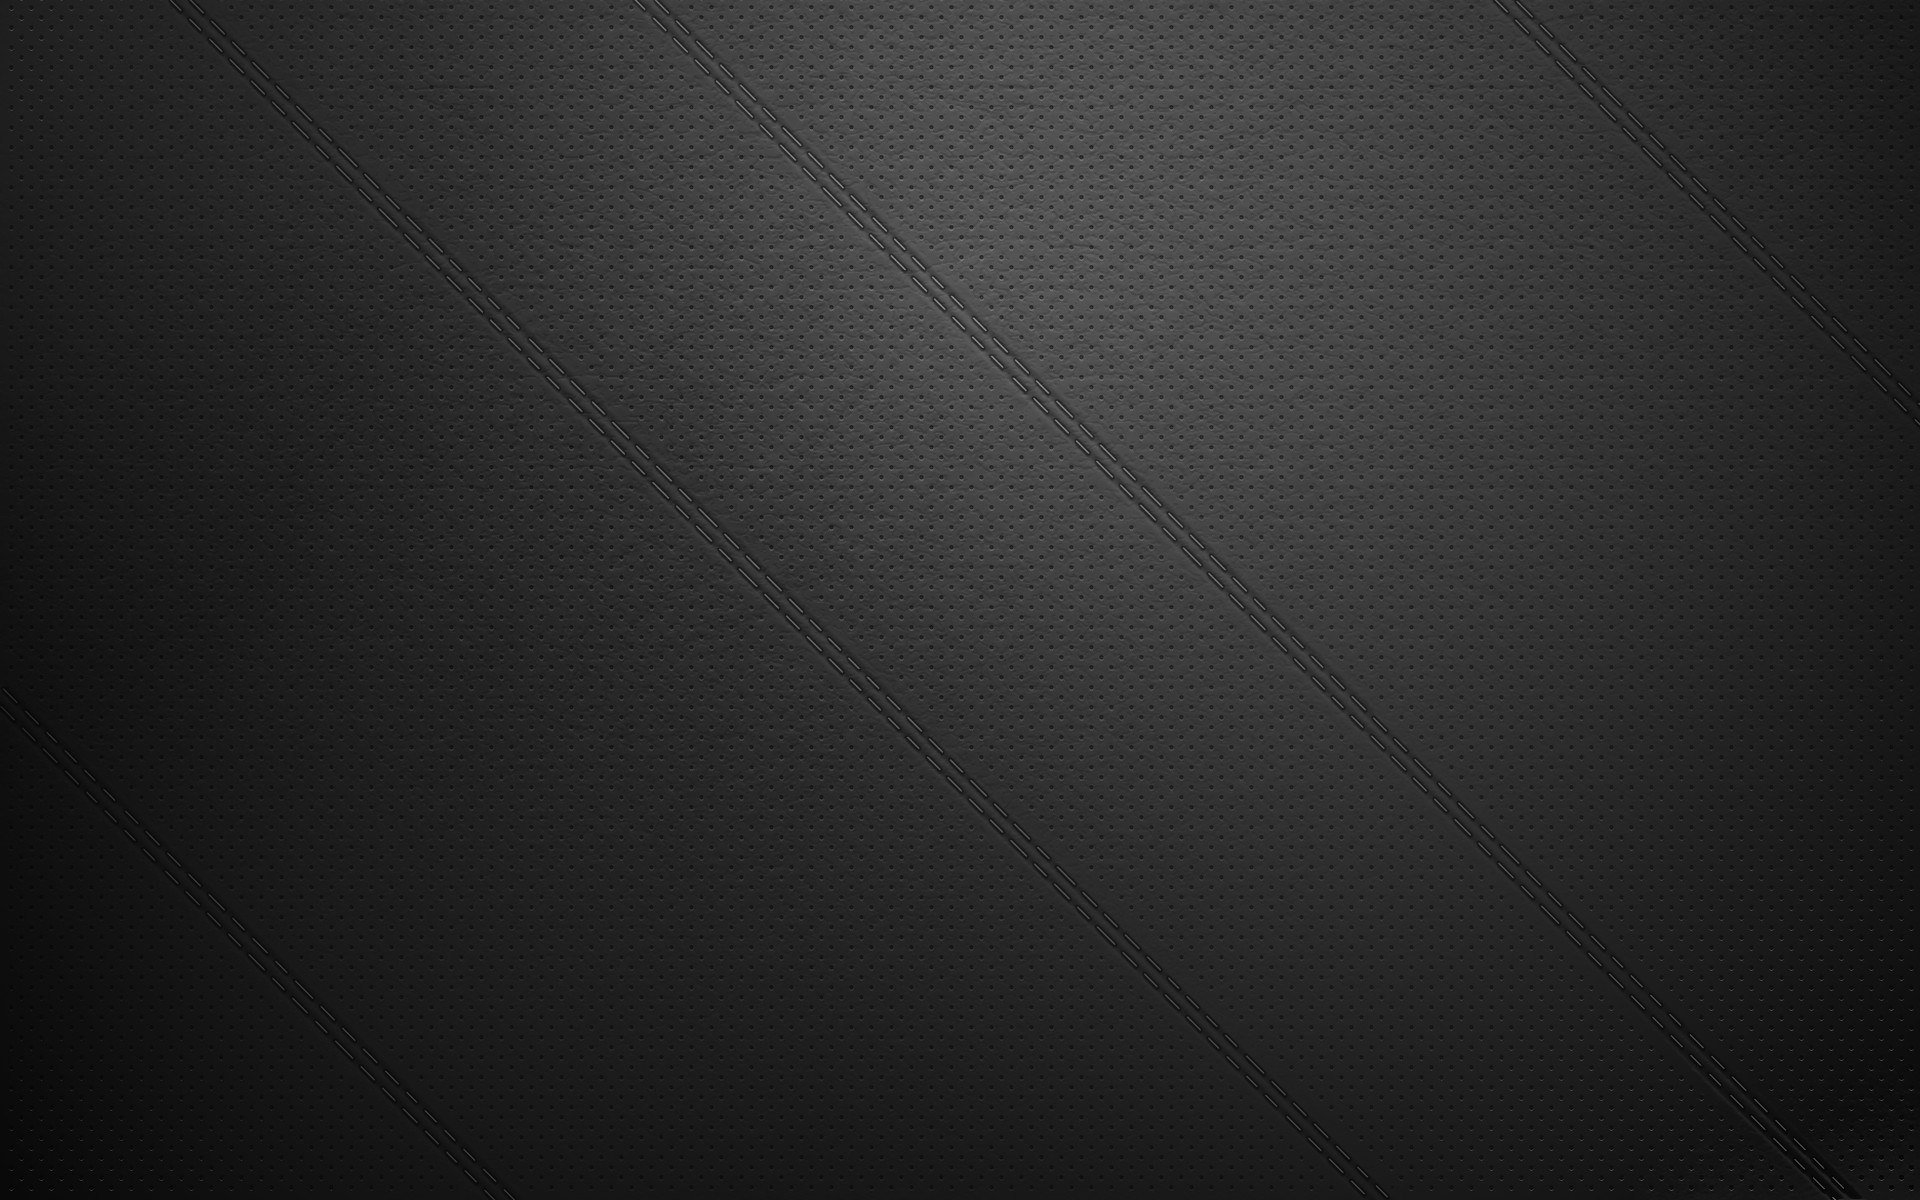 best ideas about Walpaper black on Pinterest Wallpapers   HD Wallpapers    Pinterest   Plain black wallpaper and Wallpaper